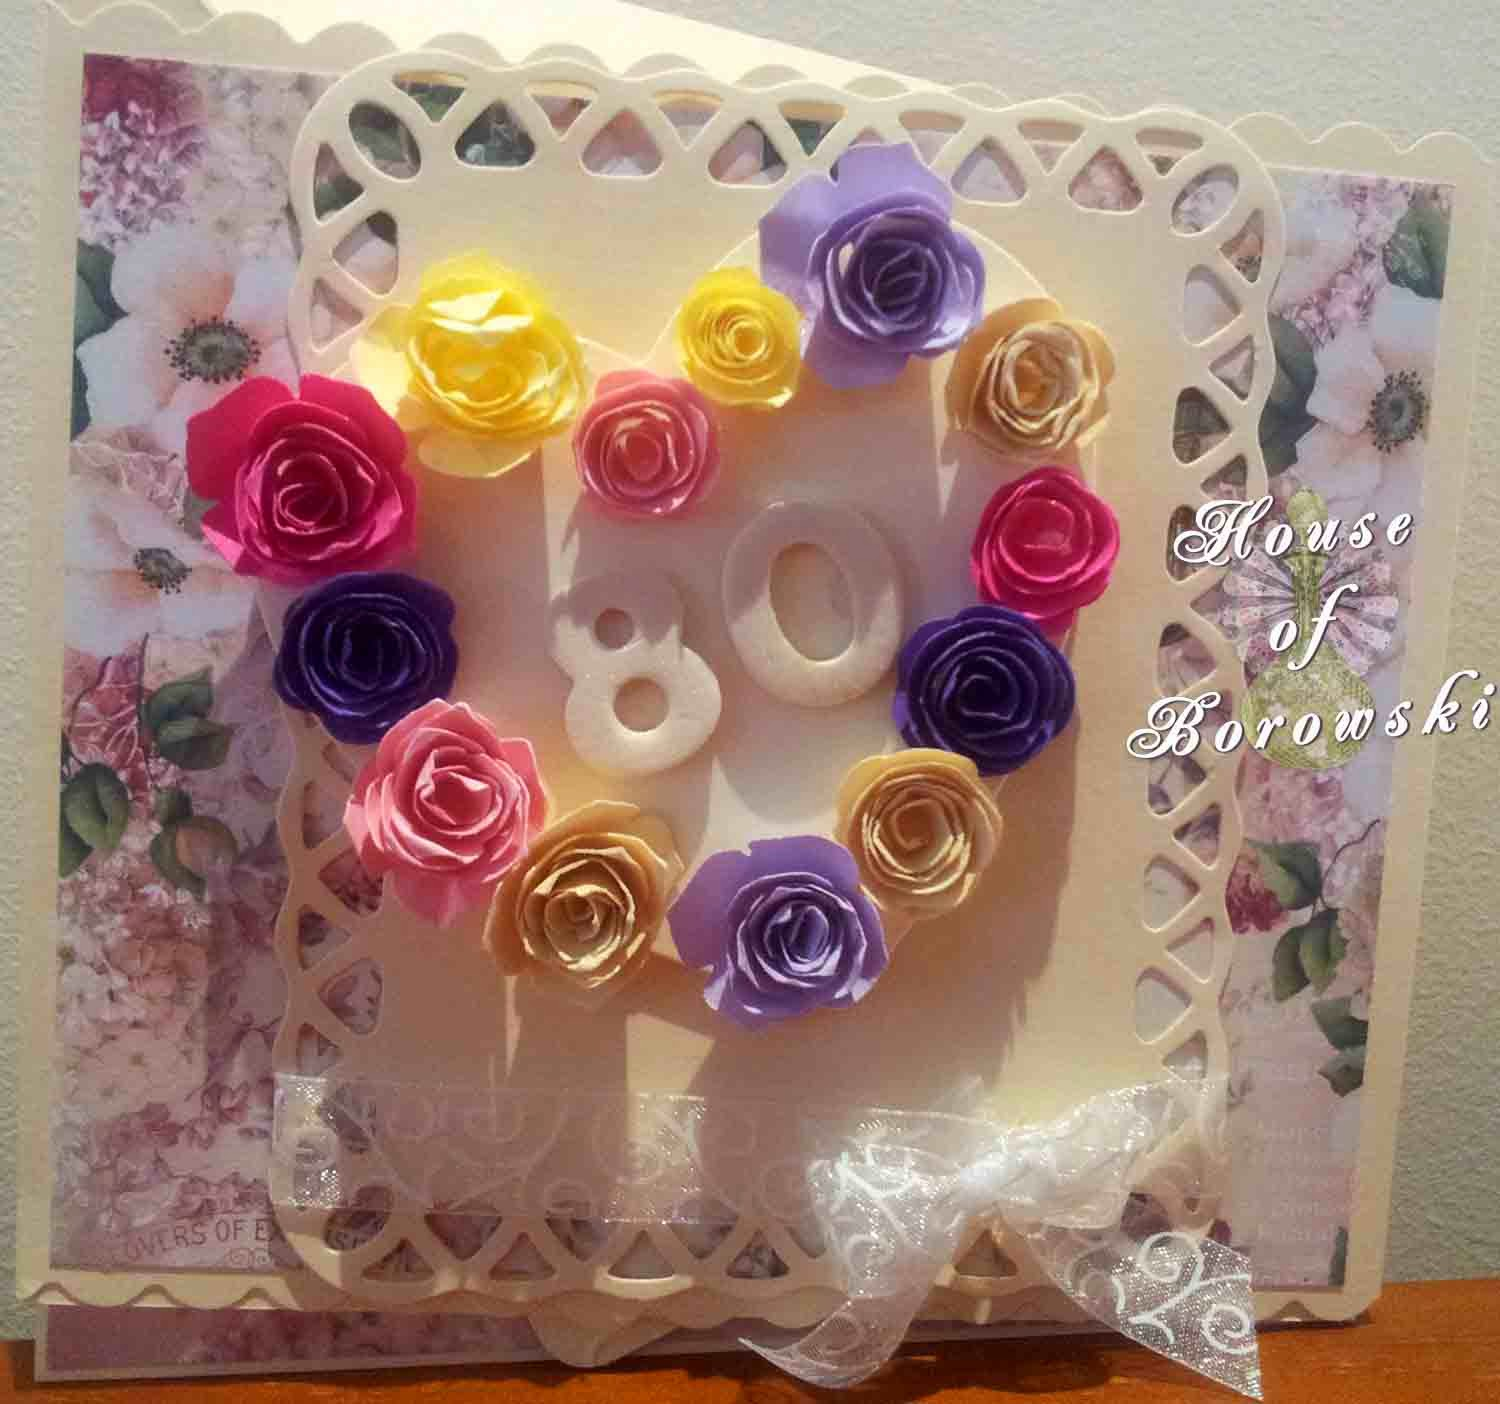 HOB, twisted easel card, megs garden, spellbinders lattice rectangles, garden favourites quilled creations,kaszazz vine edge embossing folder.